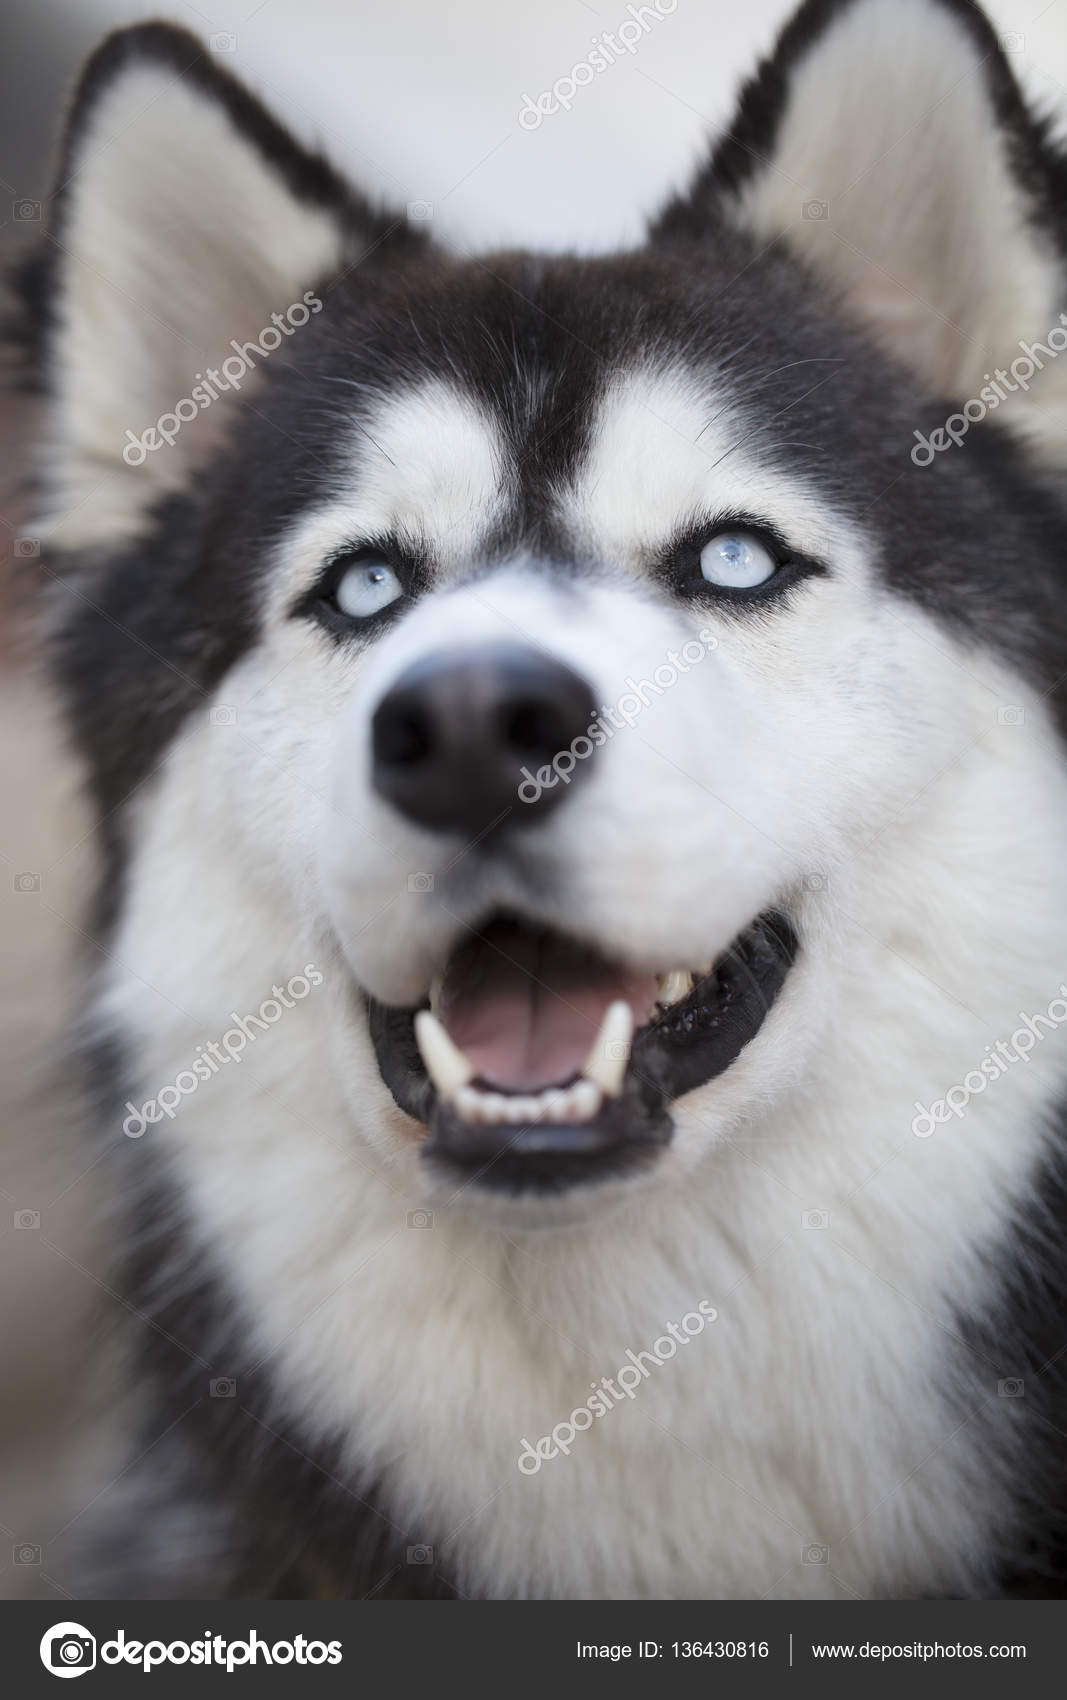 Siberian Husky Close Up Of Face Stock Photo C Almana4327 136430816